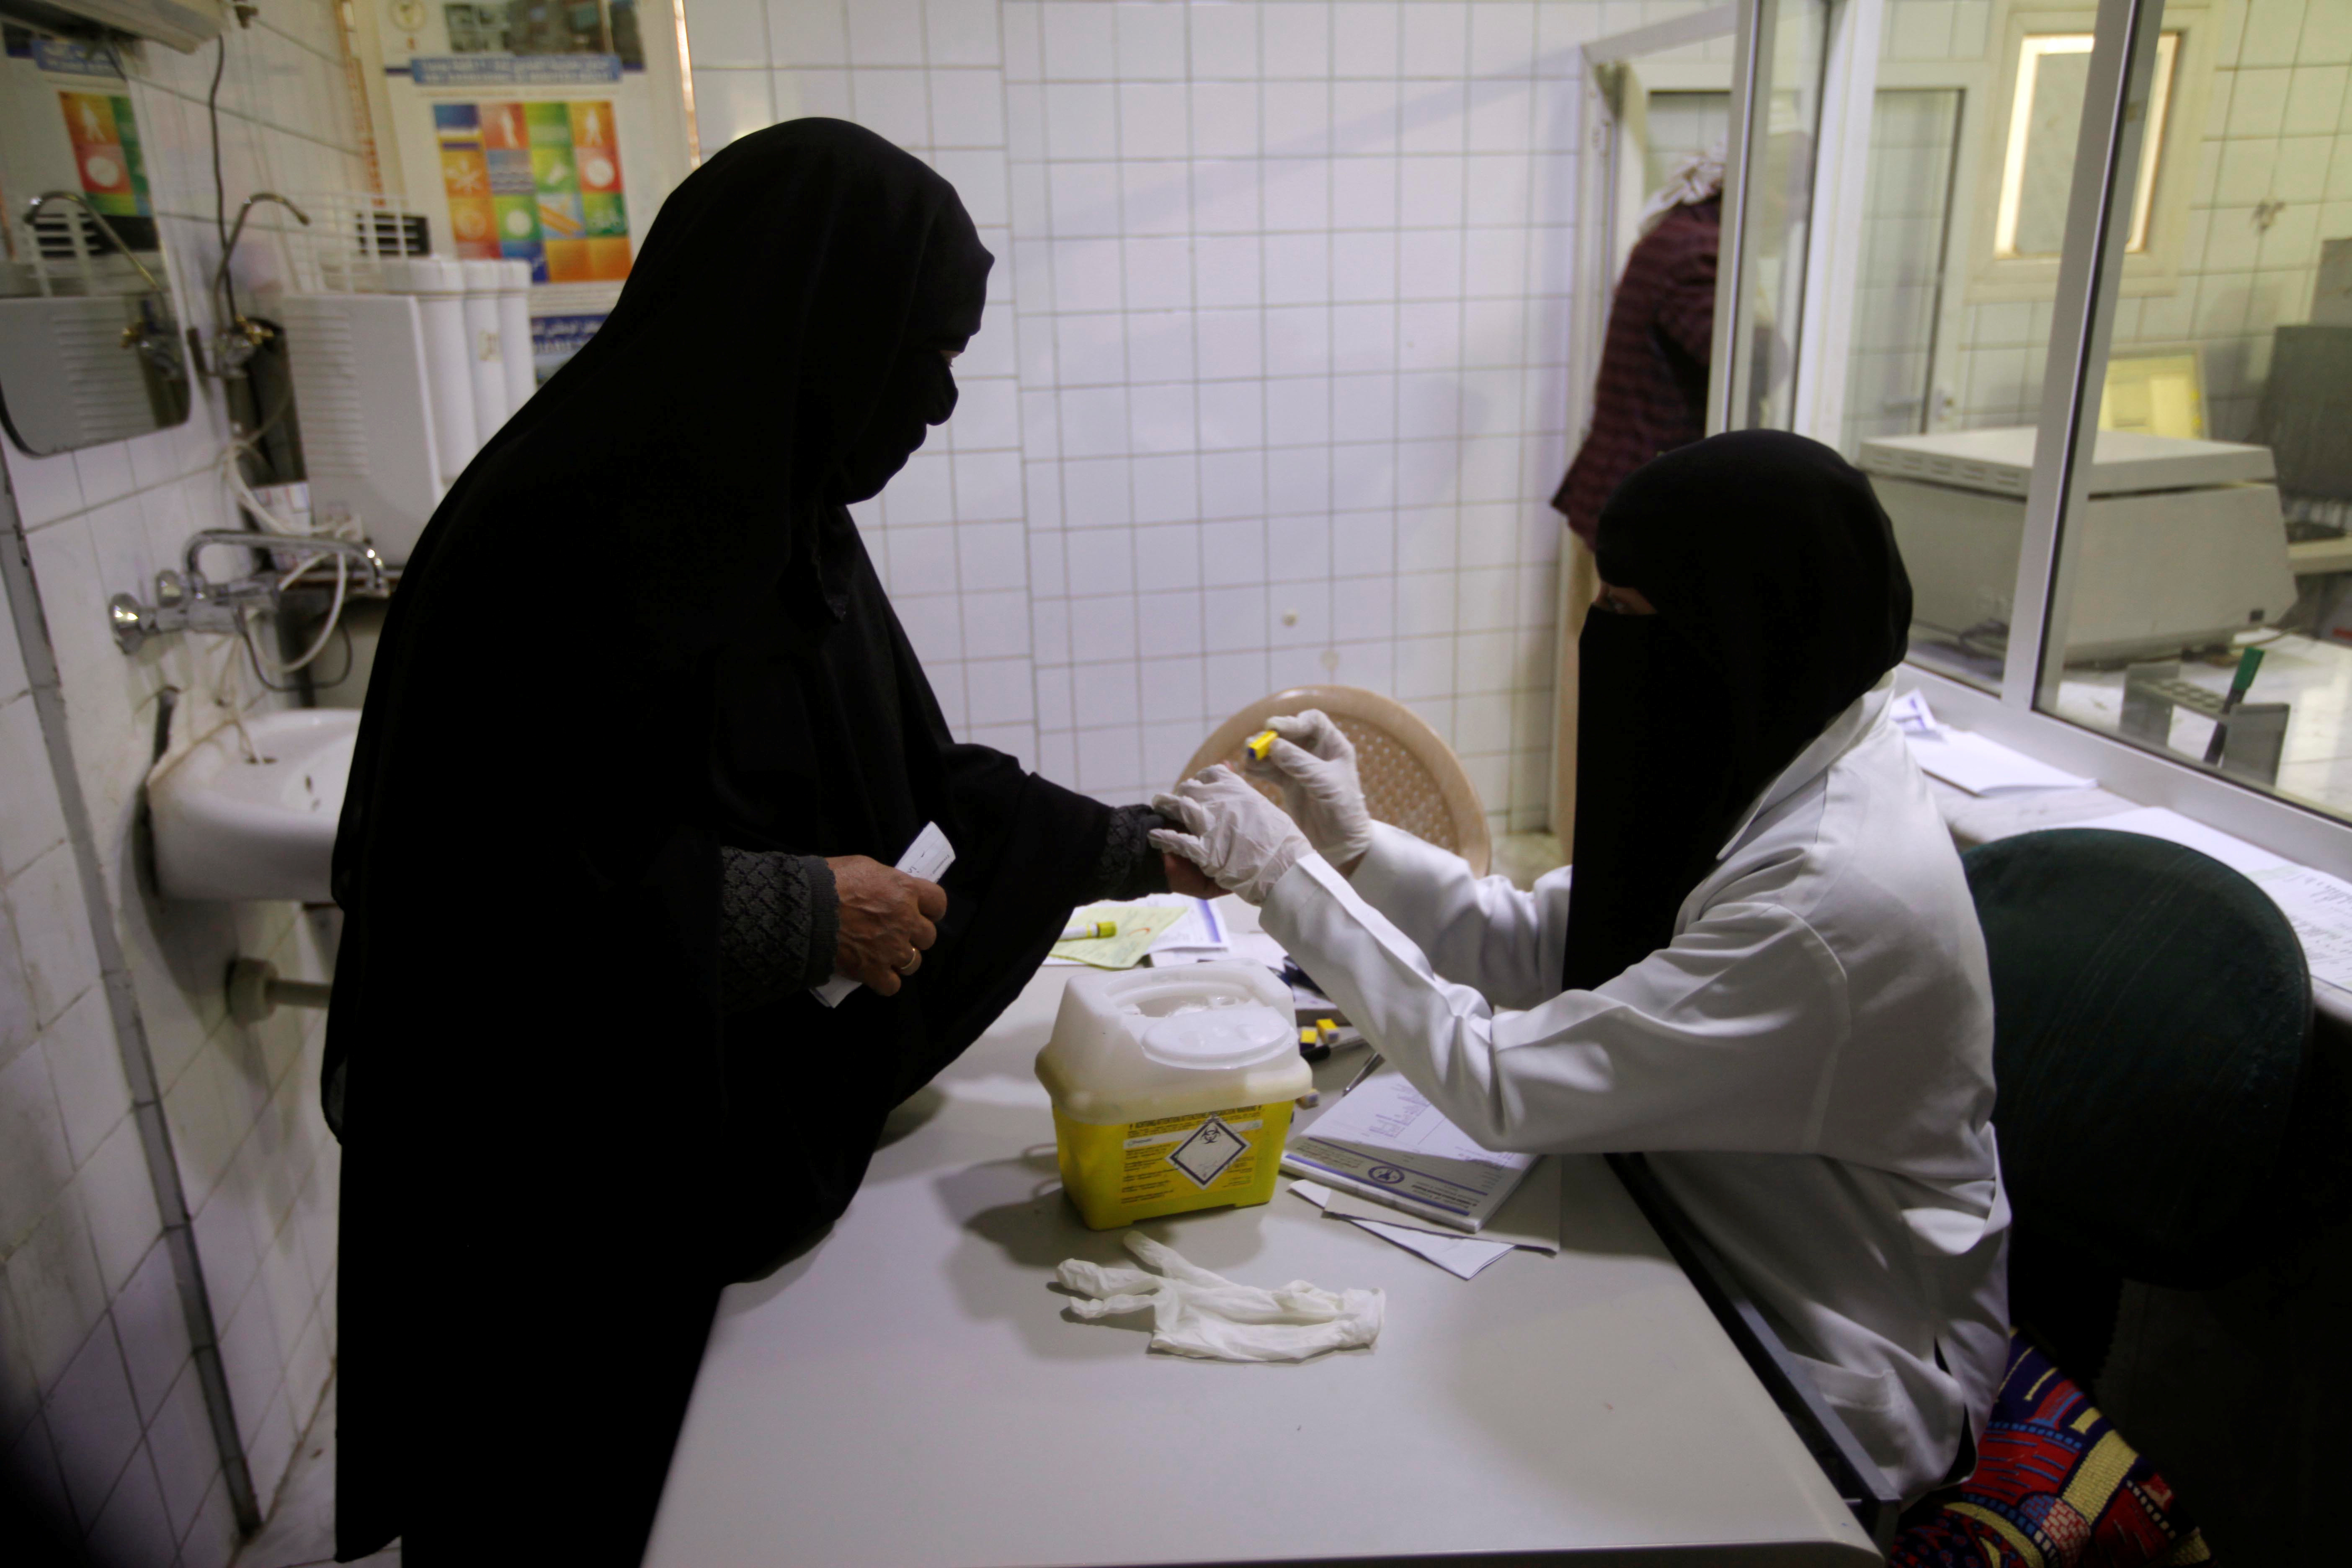 A nurse takes a blood test from a diabetes patient at a hospital in Sanaa, Yemen March 12, 2019. Picture taken March 12, 2019. REUTERS/Mohamed al-Sayaghi - RC1F575A1240